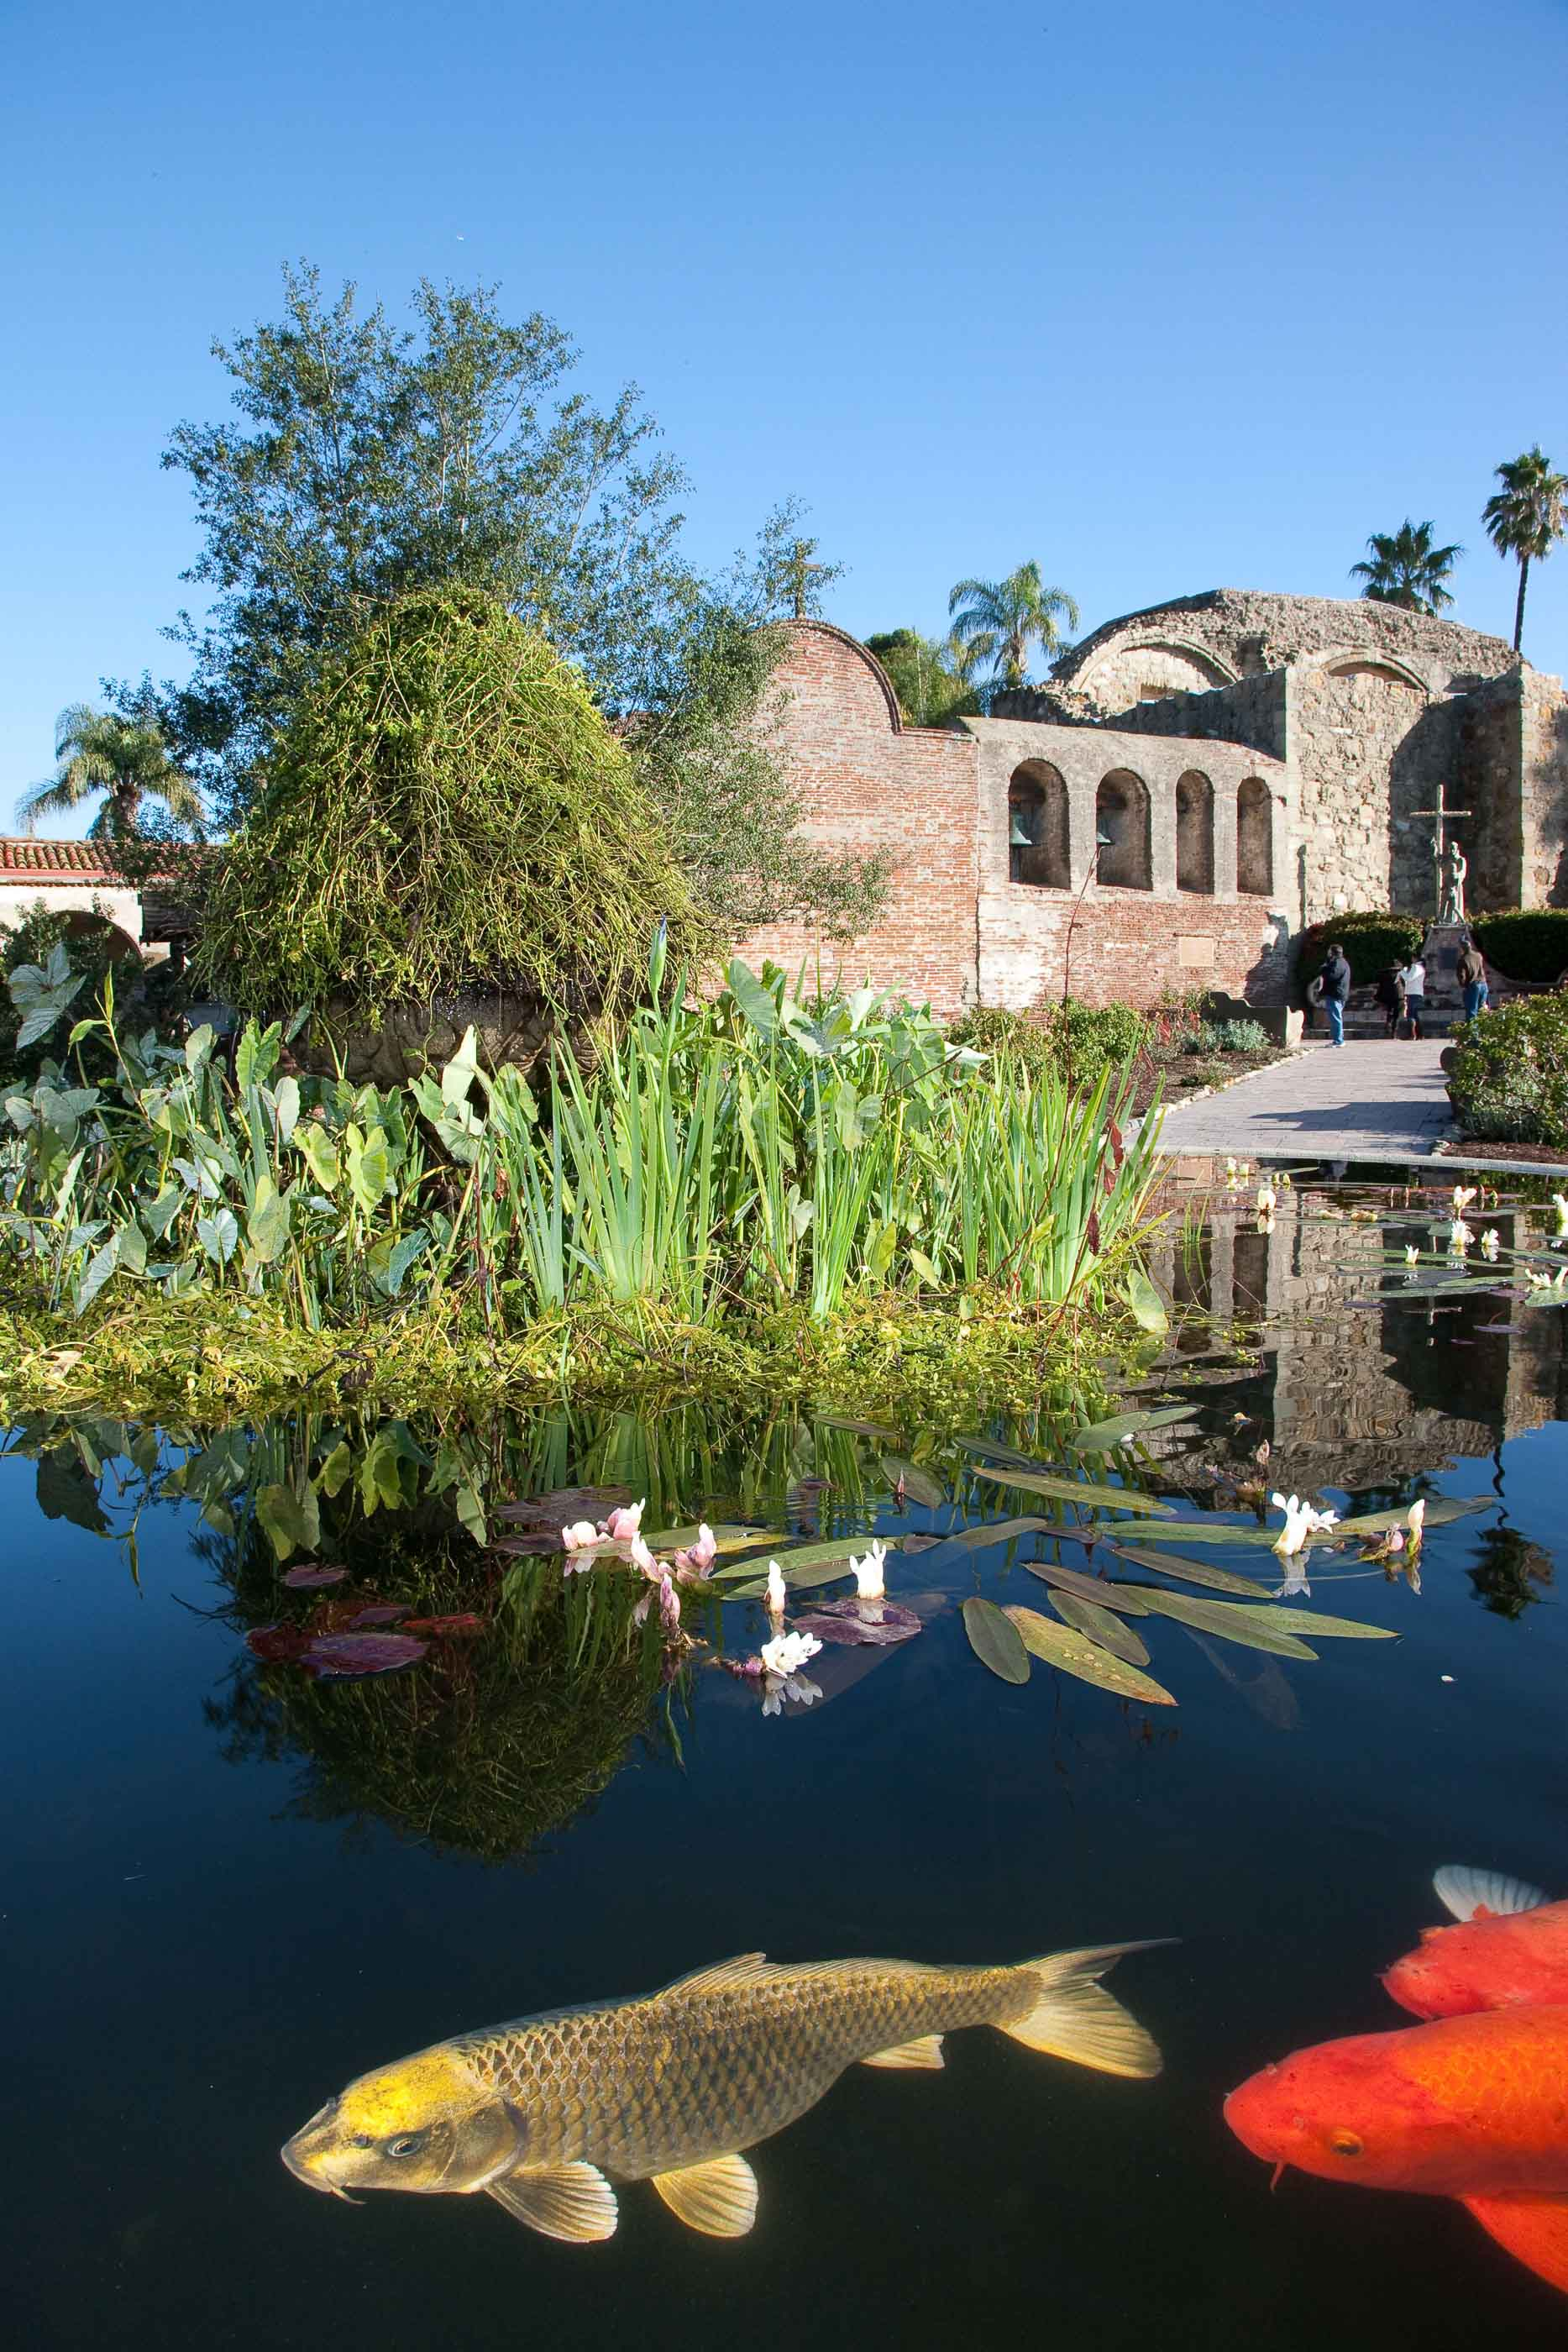 Coy Fish Pond at the San Juan Capistrano Mission